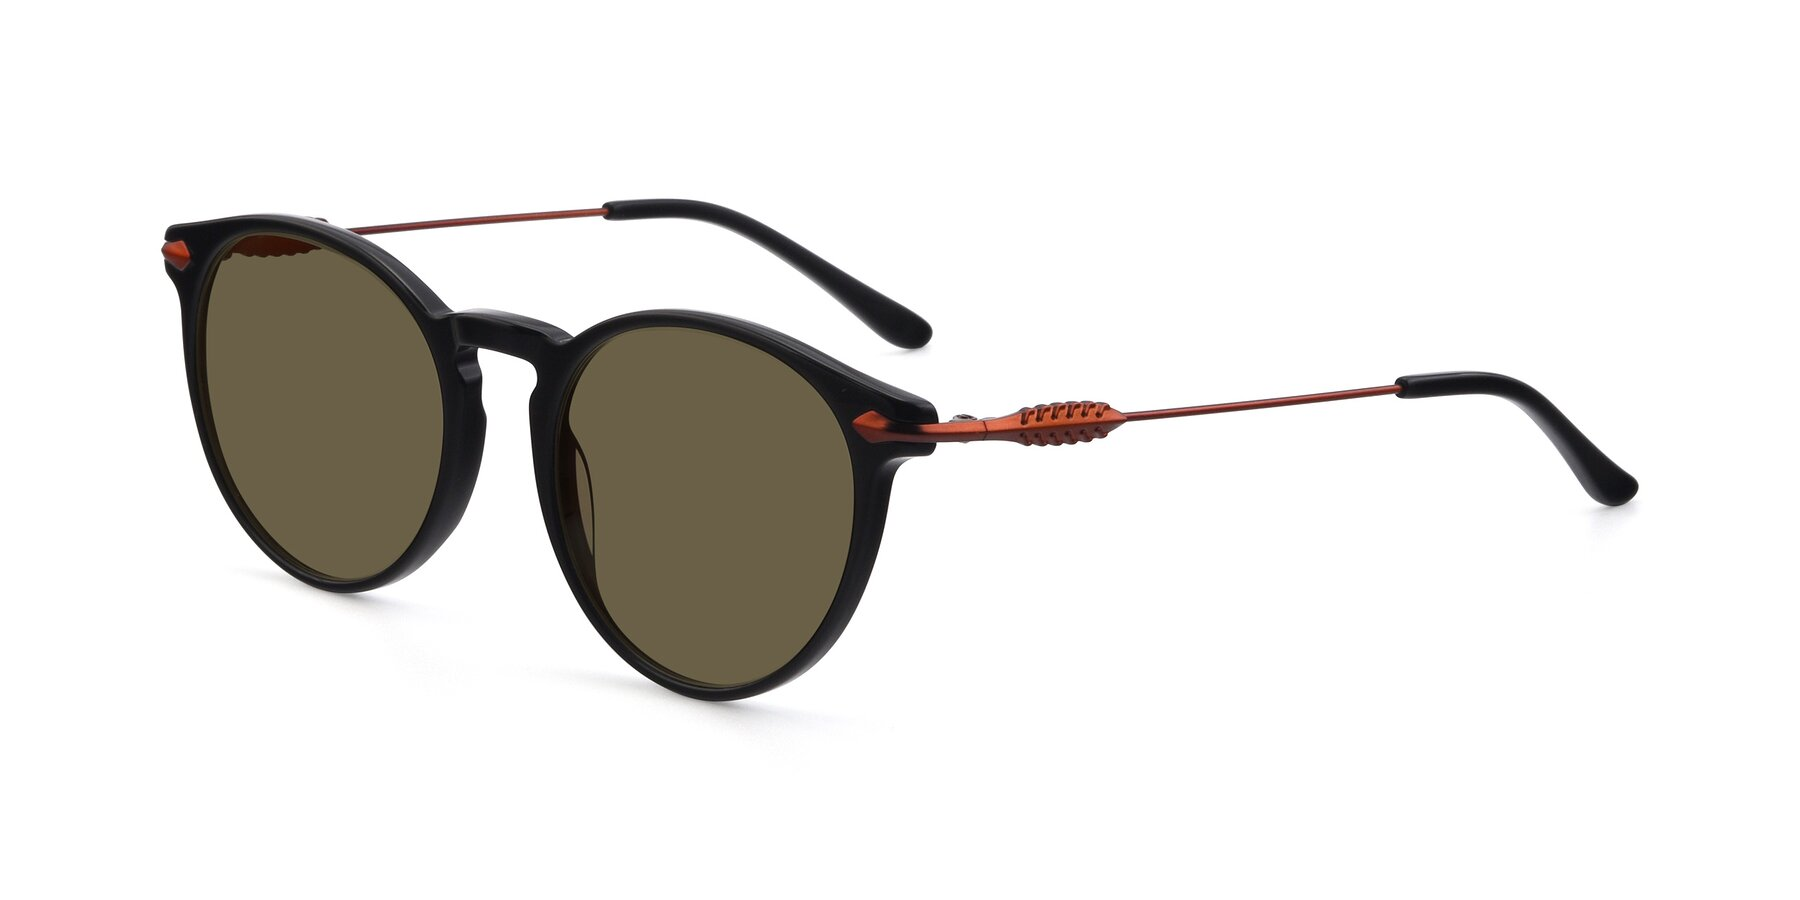 Angle of 17660 in Black with Brown Polarized Lenses